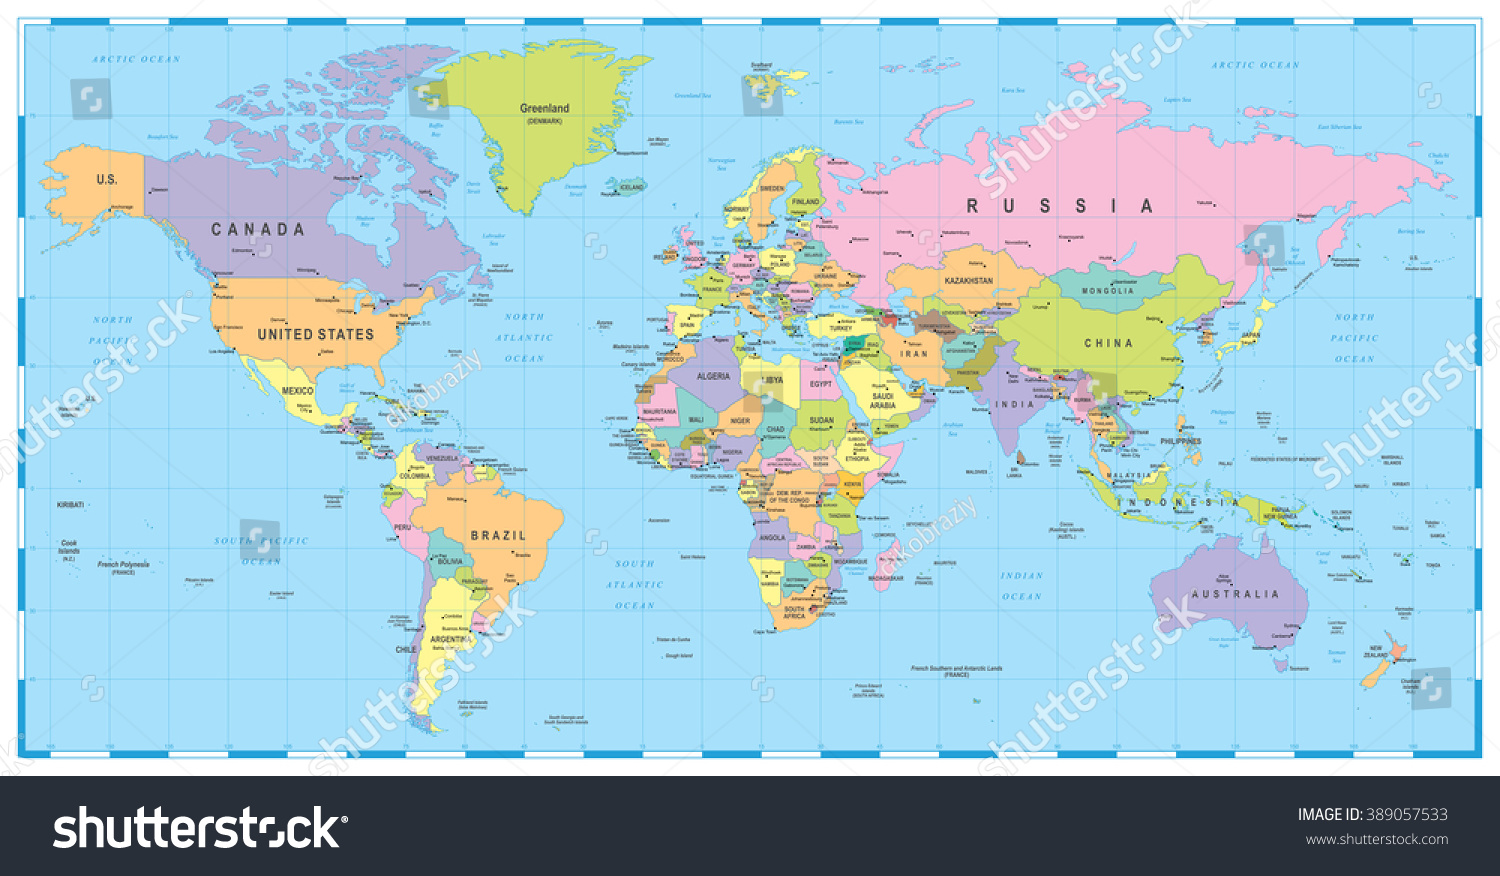 Royalty free colored world map borders countries 389057533 colored world map borders countries and cities illustration image contains next layers land contours country and land names city names water gumiabroncs Images